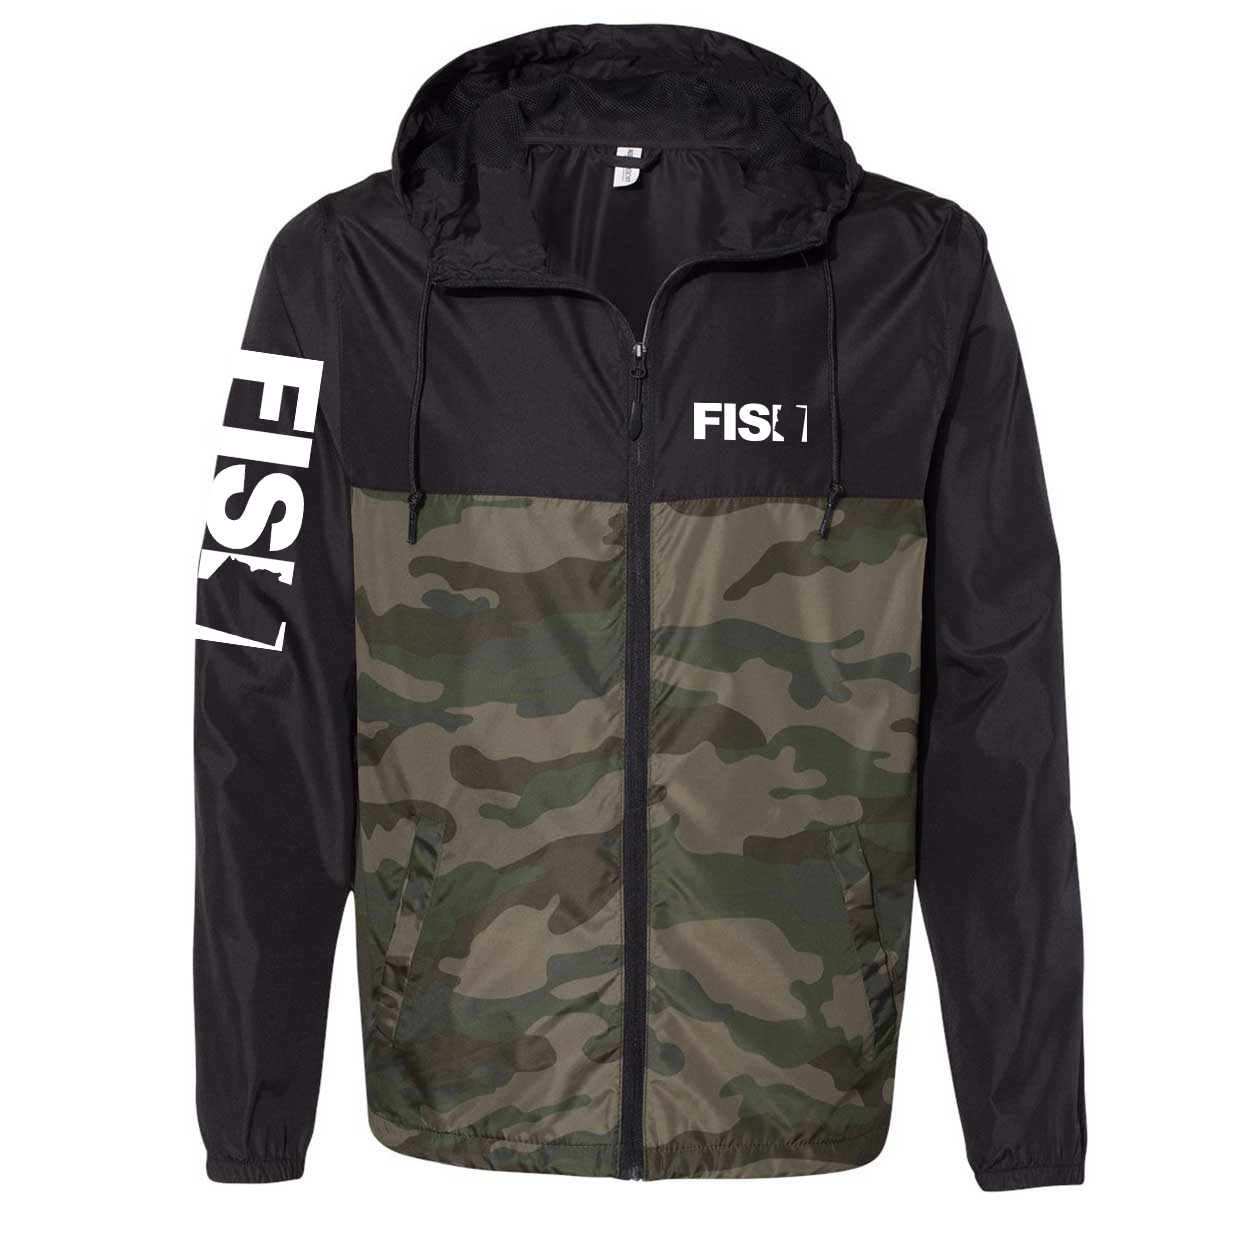 Fish Arizona Classic Lightweight Windbreaker Black/Forest Camo (White Logo)